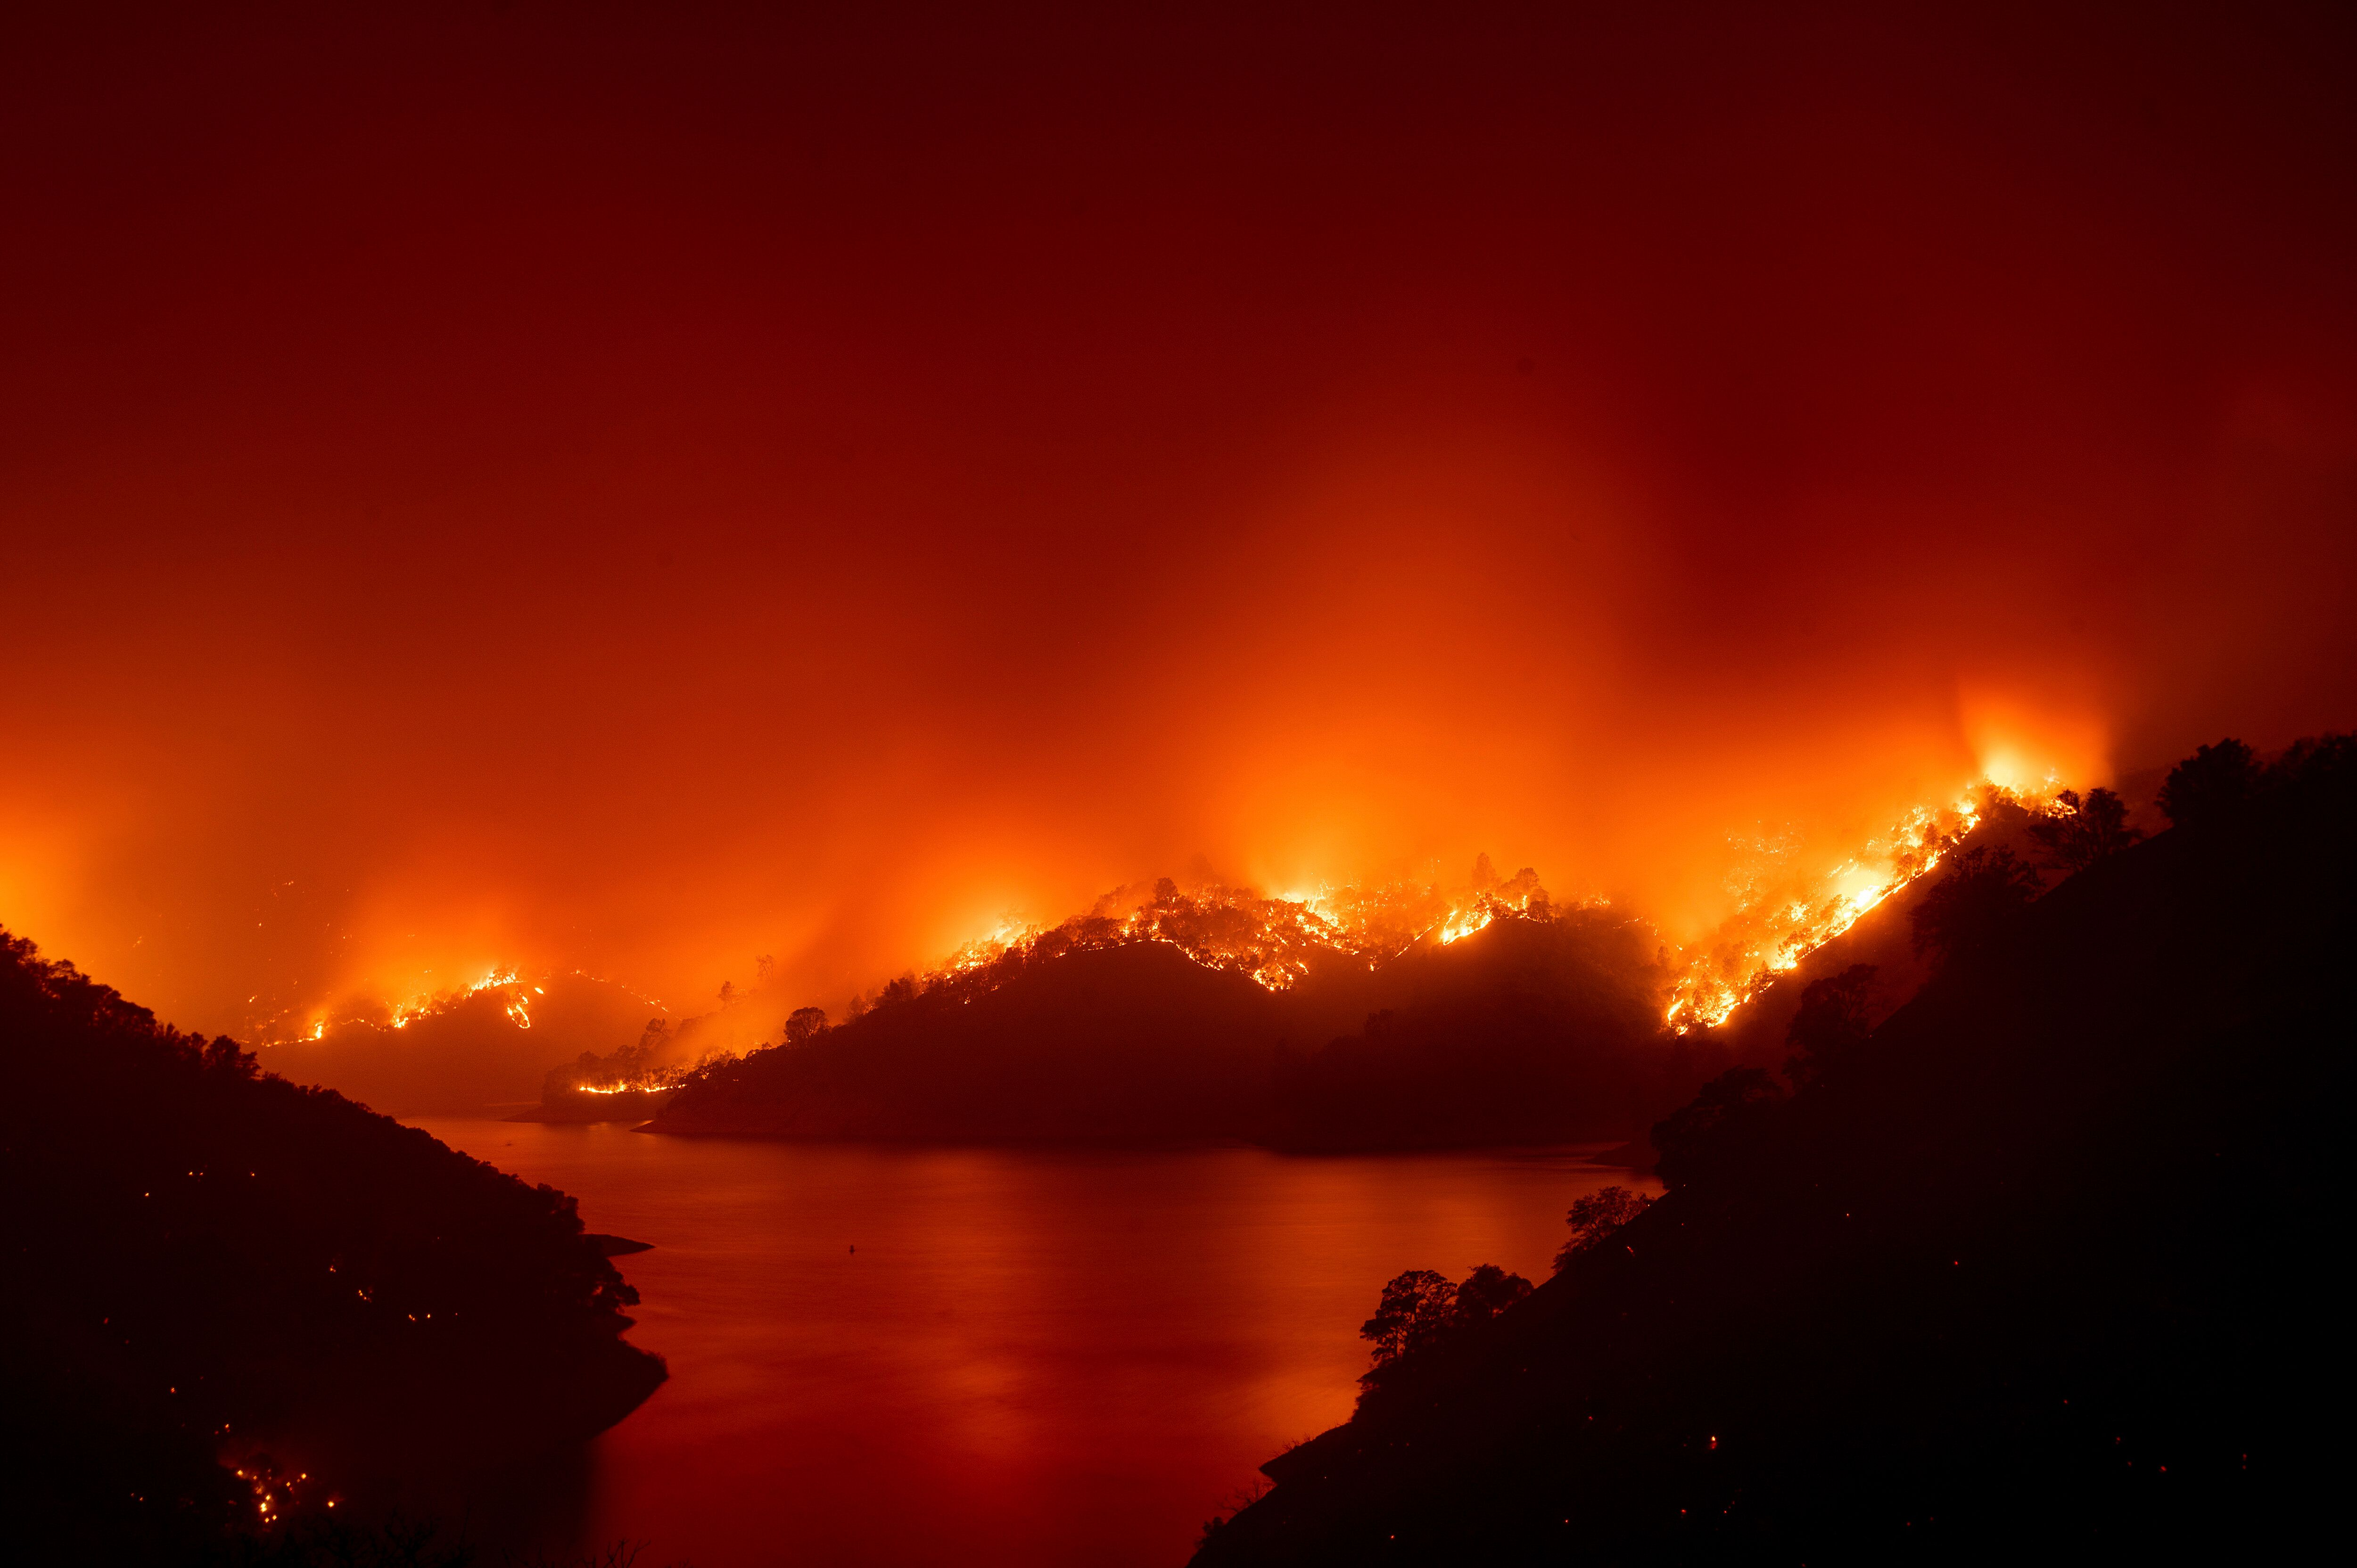 Flames from the wildfire designated as the LNU Lightning Complex are seen around Lake Berryessa in Napa County, California on